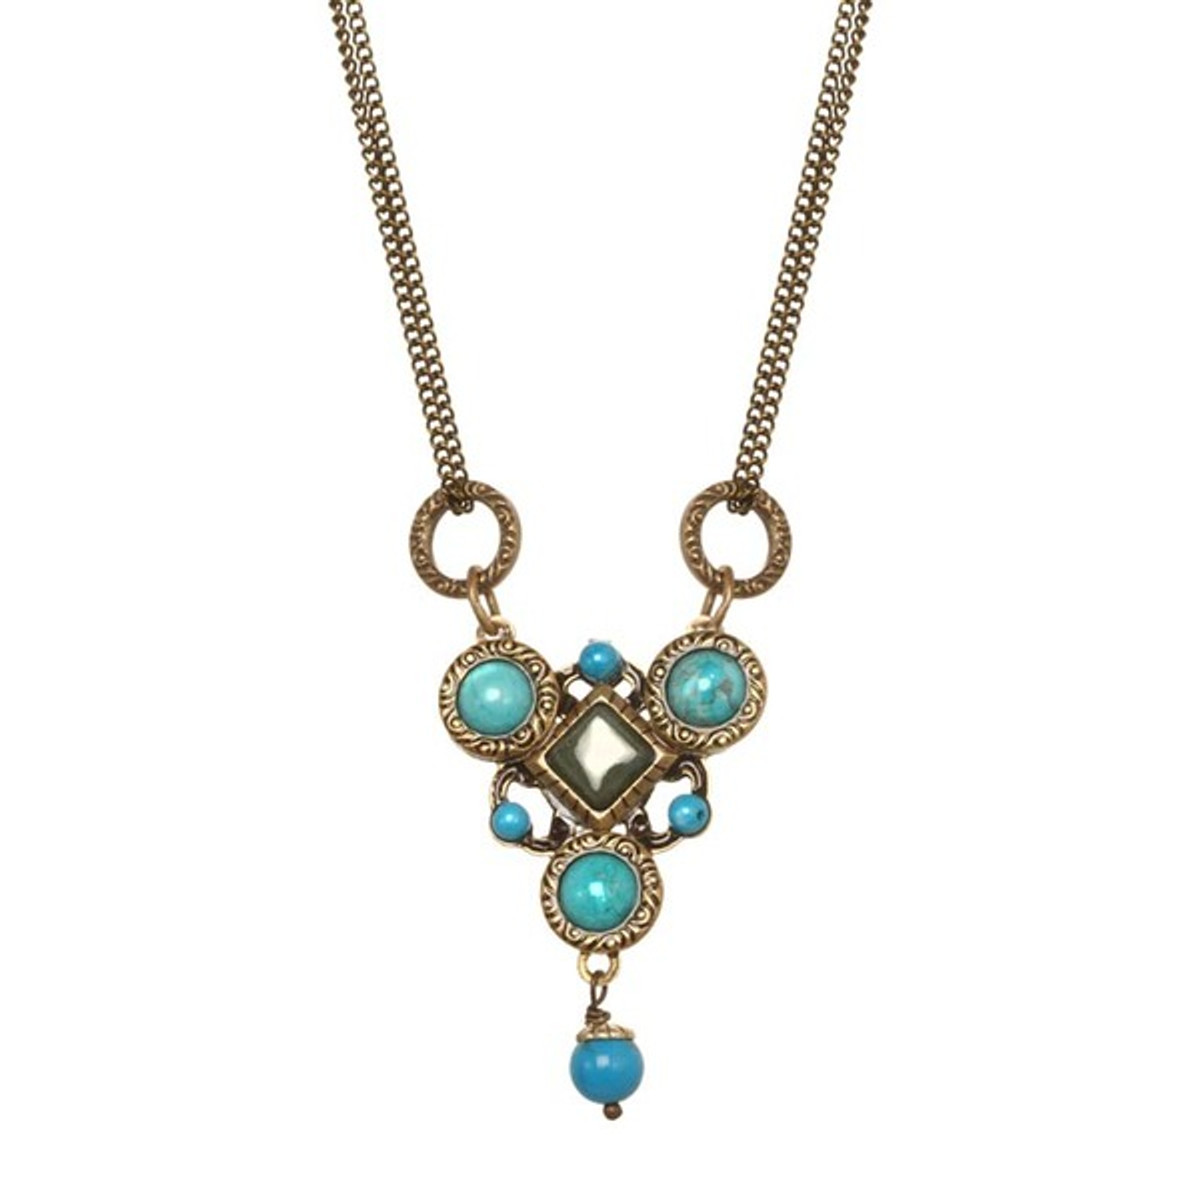 Turquoise Nile Necklace by Michal Golan